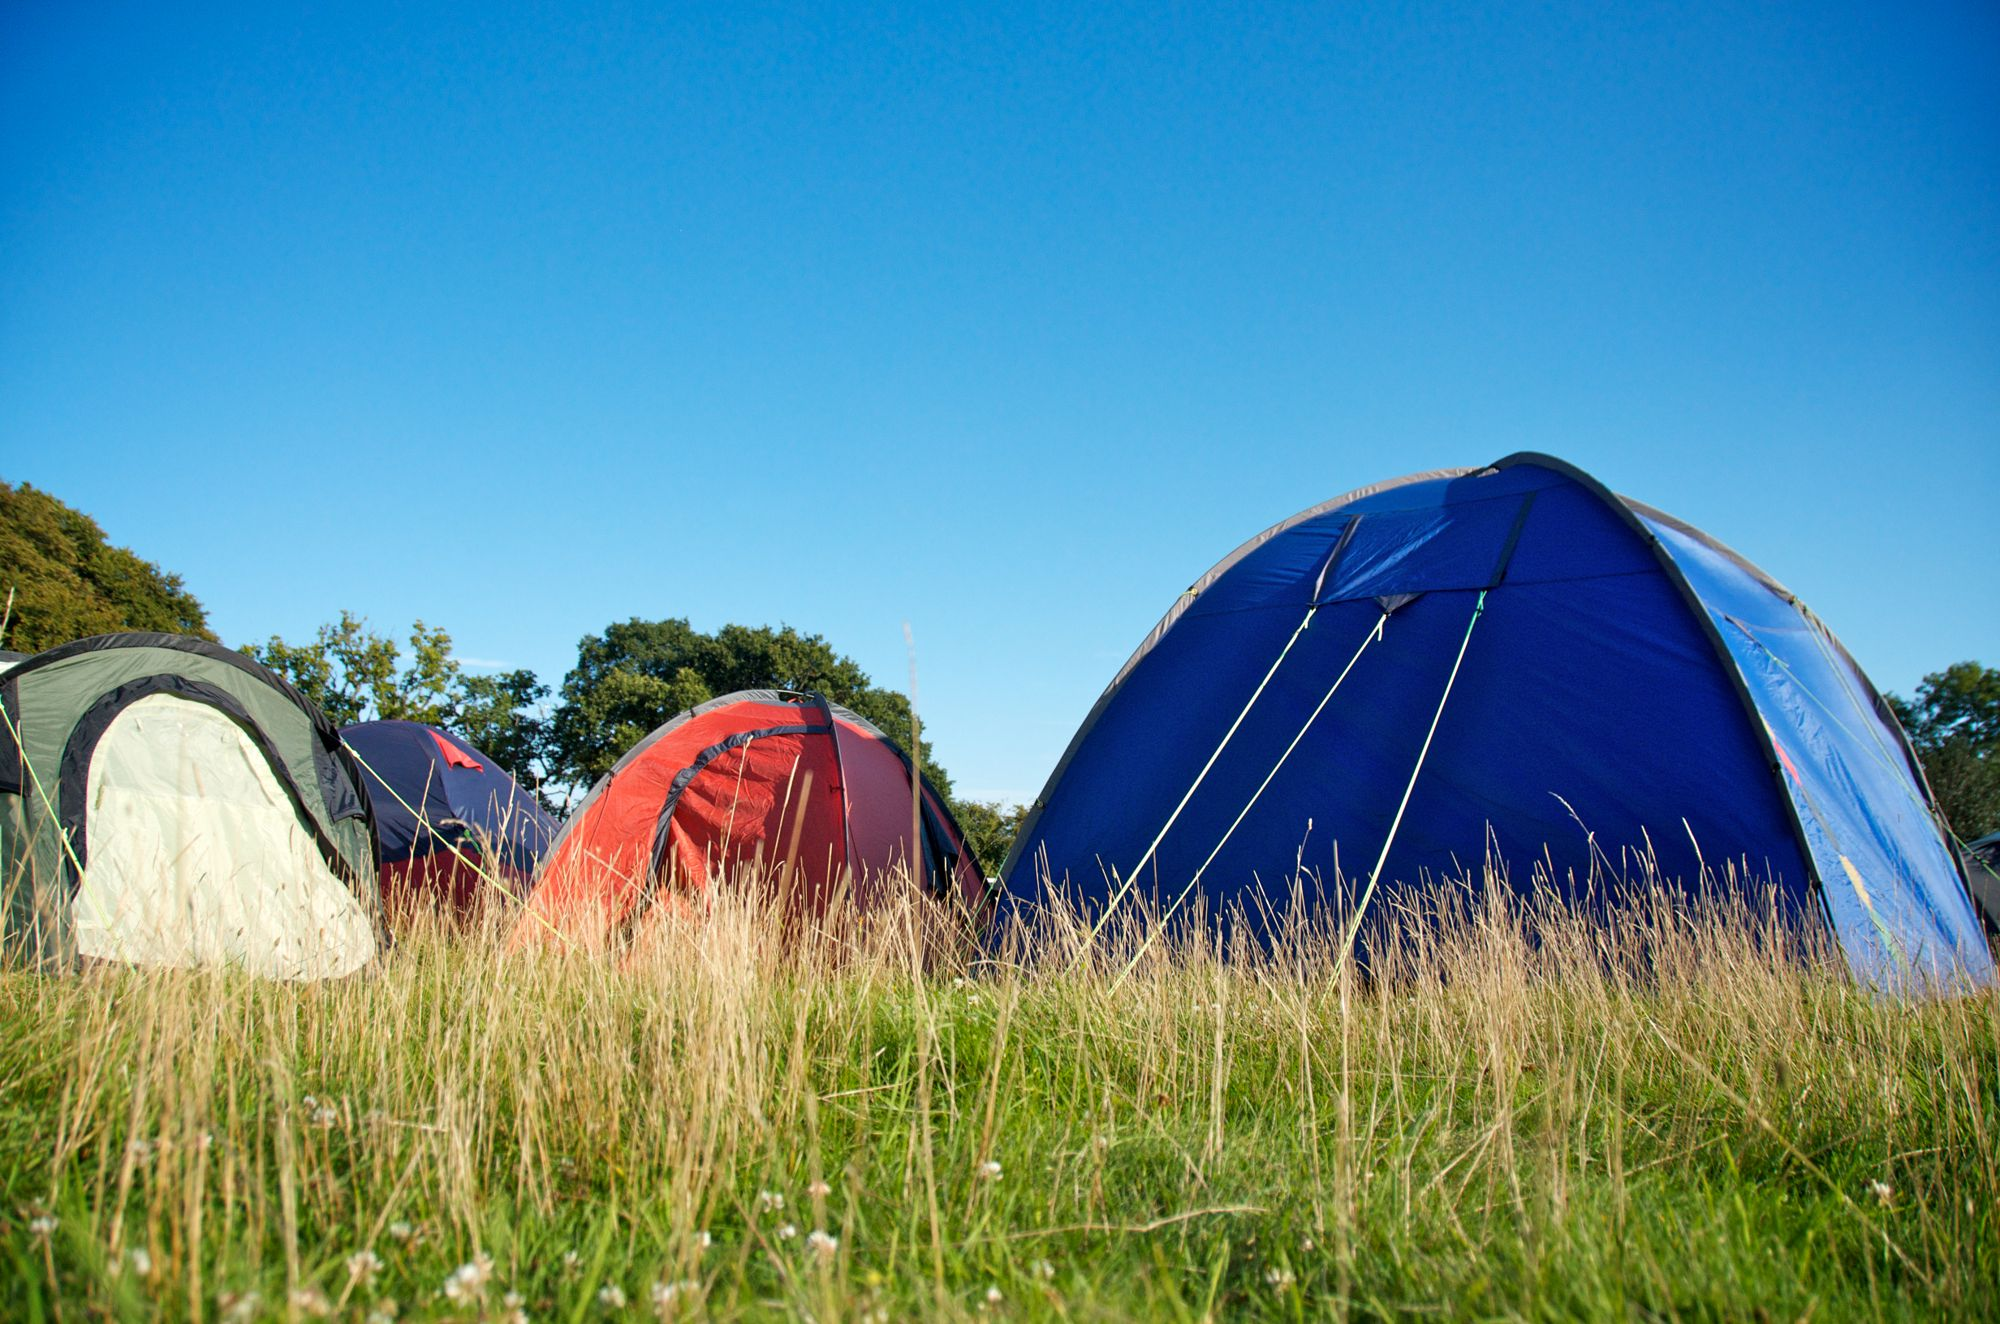 Campsites in Bourton-on-the-Water holidays at Cool Places